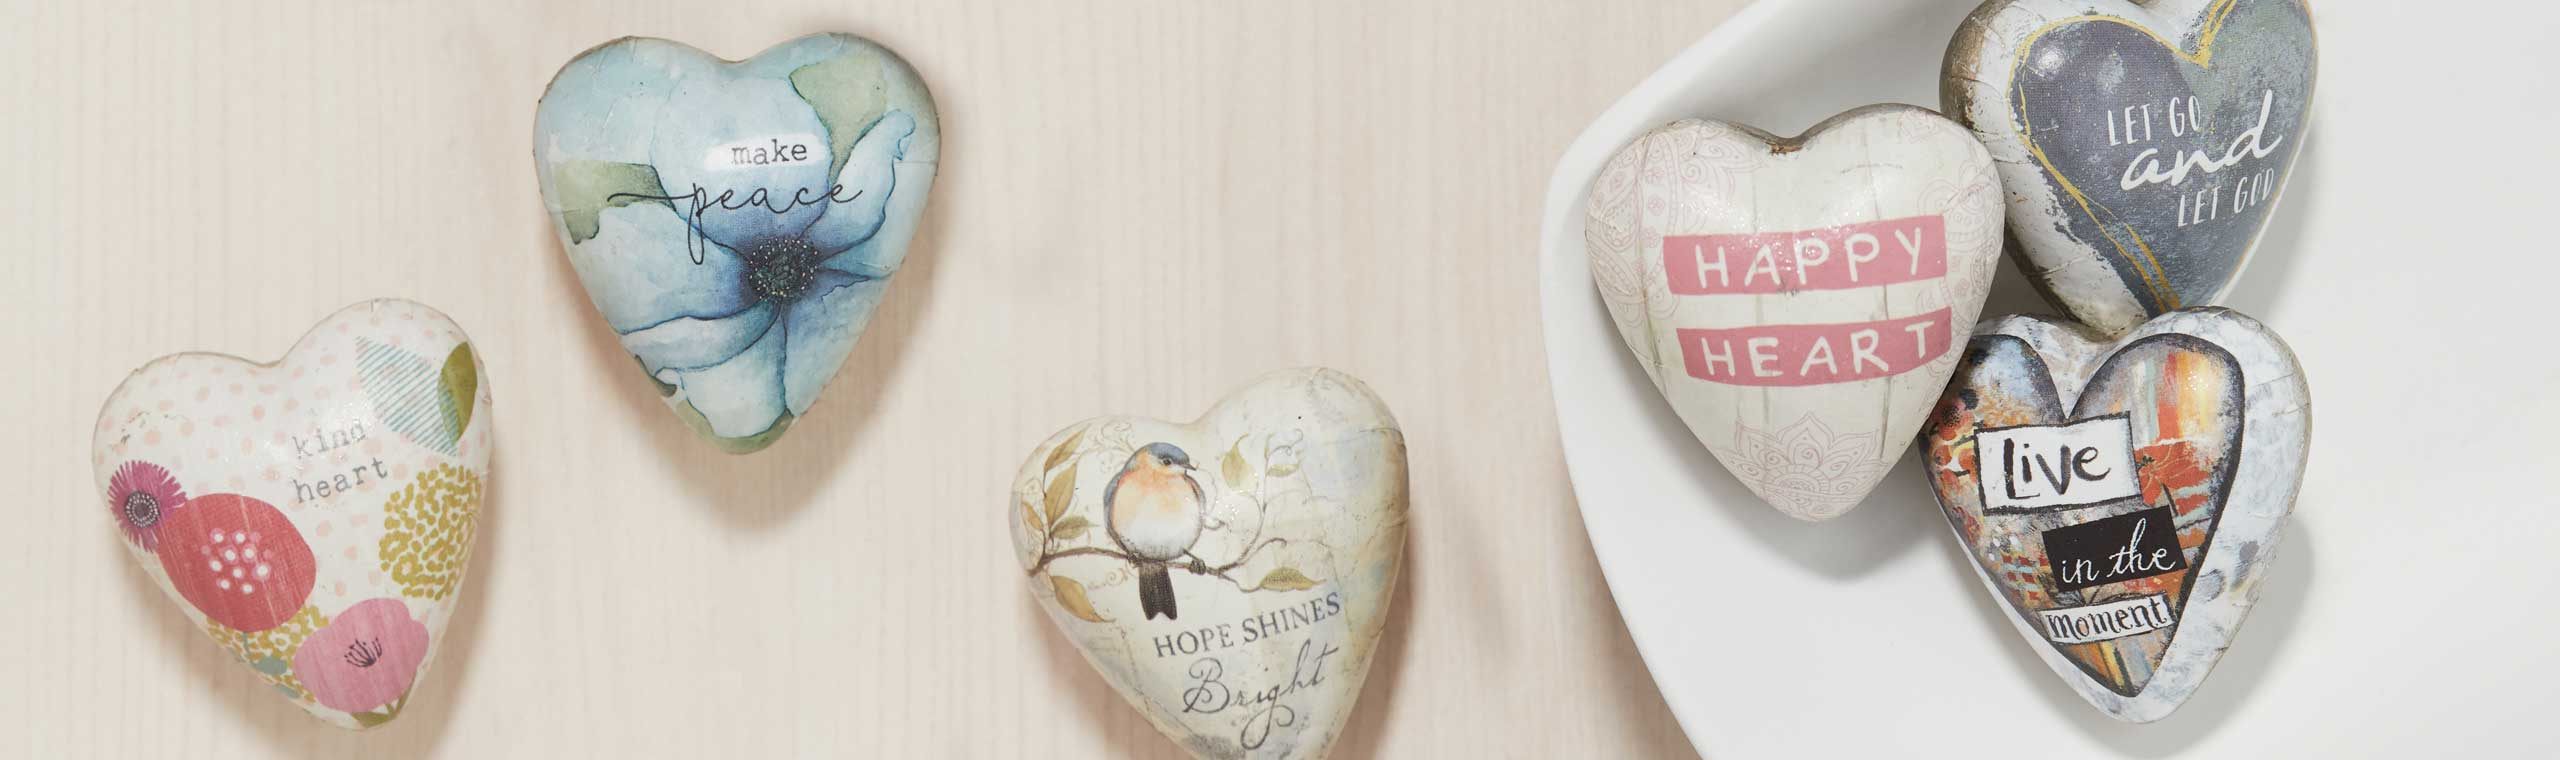 Series of art heart tokens with quotes